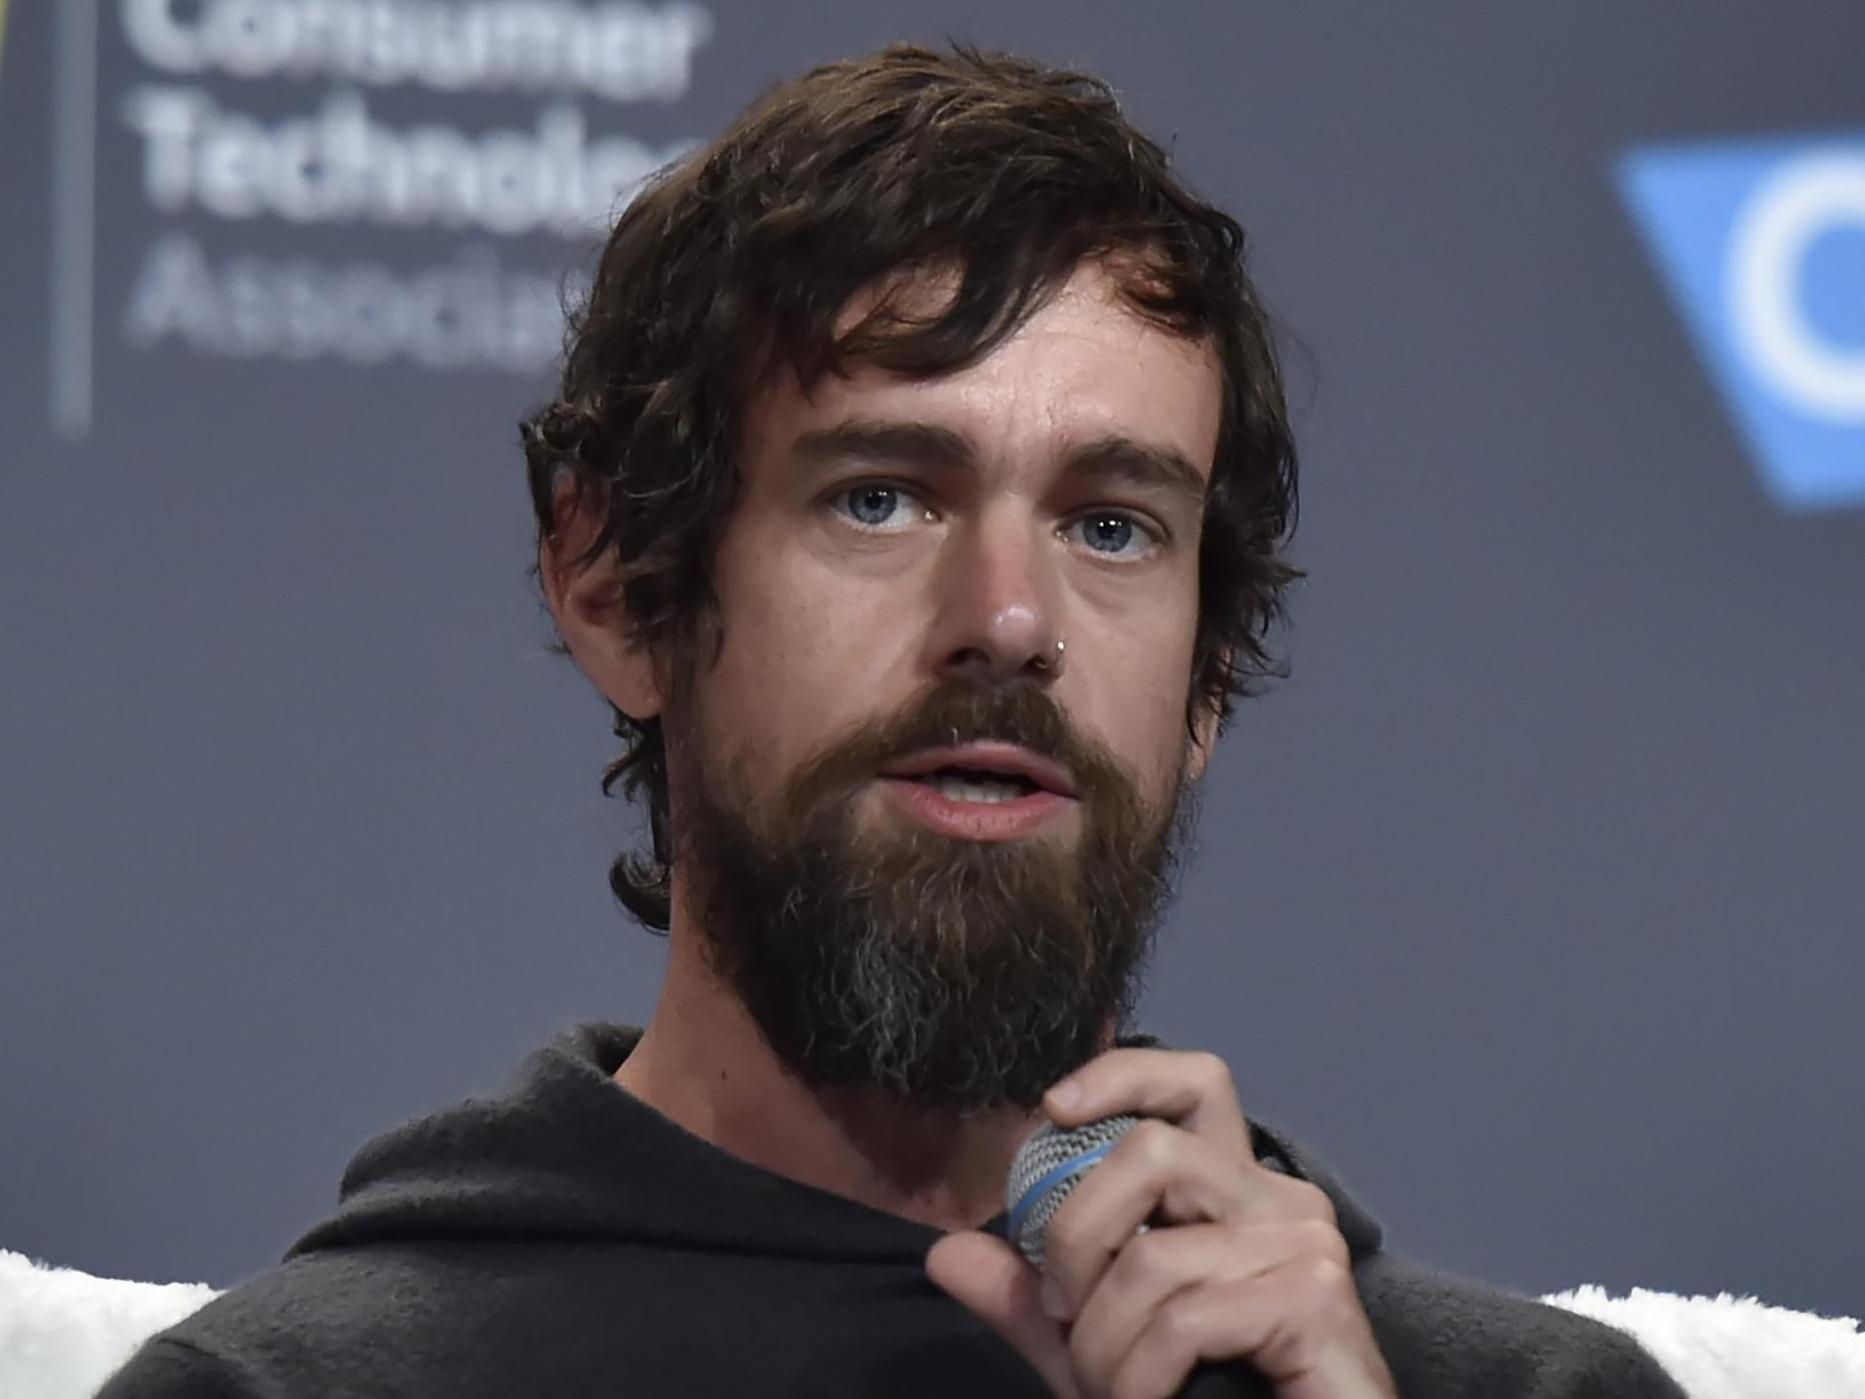 Twitter Ceo Jack Dorsey Donates 3m To Ubi Experiment The Independent The Independent